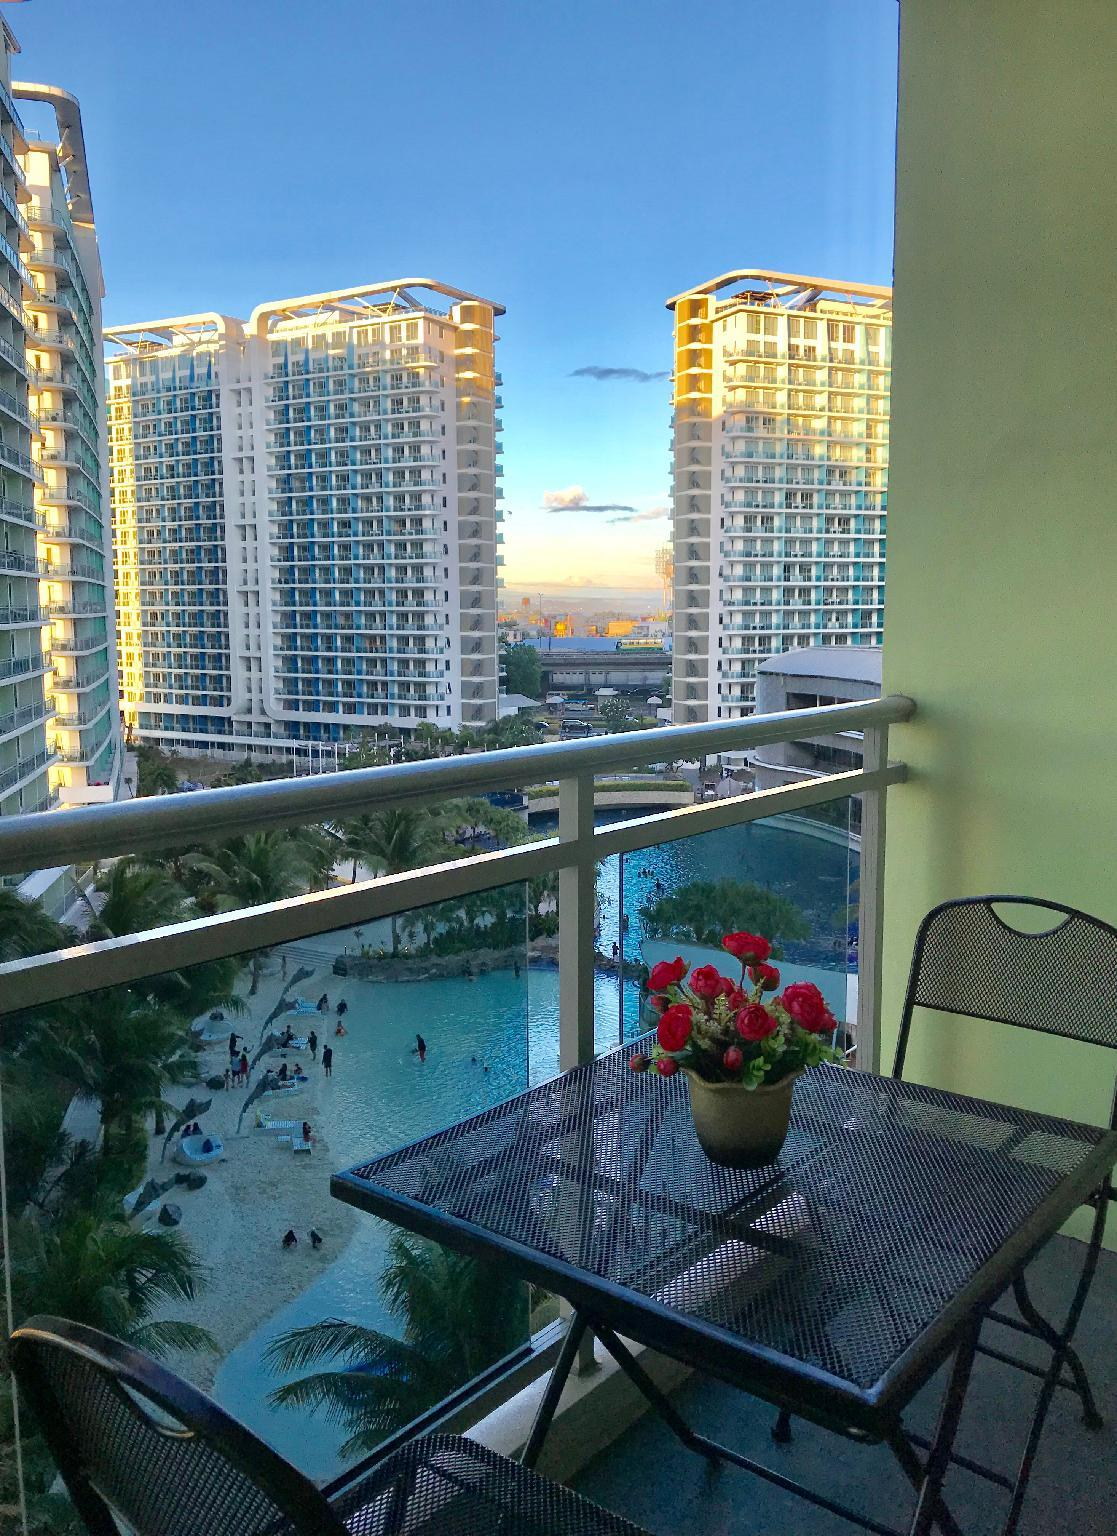 Azure Luxury Beachview 1BR Suite by VacationsPH - Hotels Information/Map/Reviews/Reservation